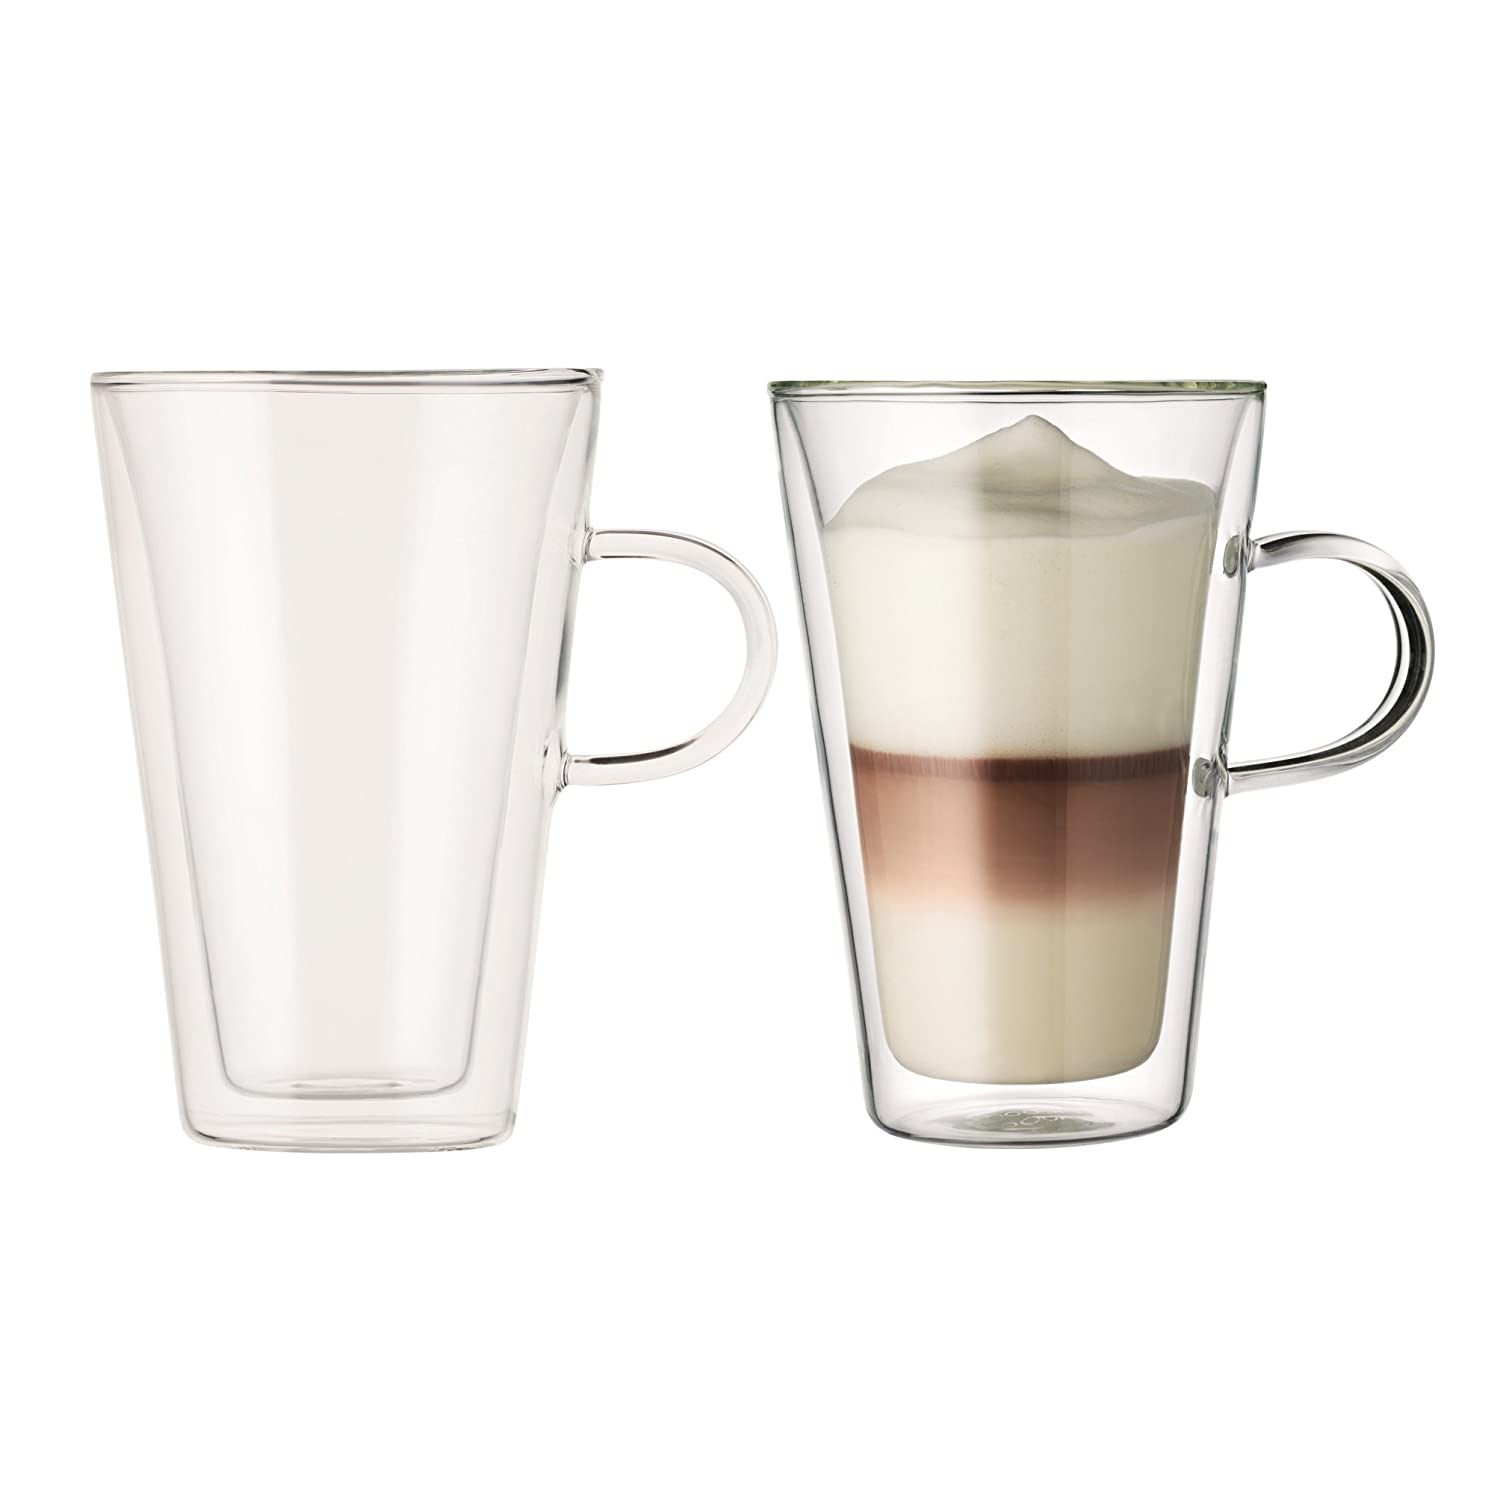 Bodum Canteen Glass Mug, Double-Wall Insulated Glass, Clear, 13.5 Ounce, (2 Glasses)